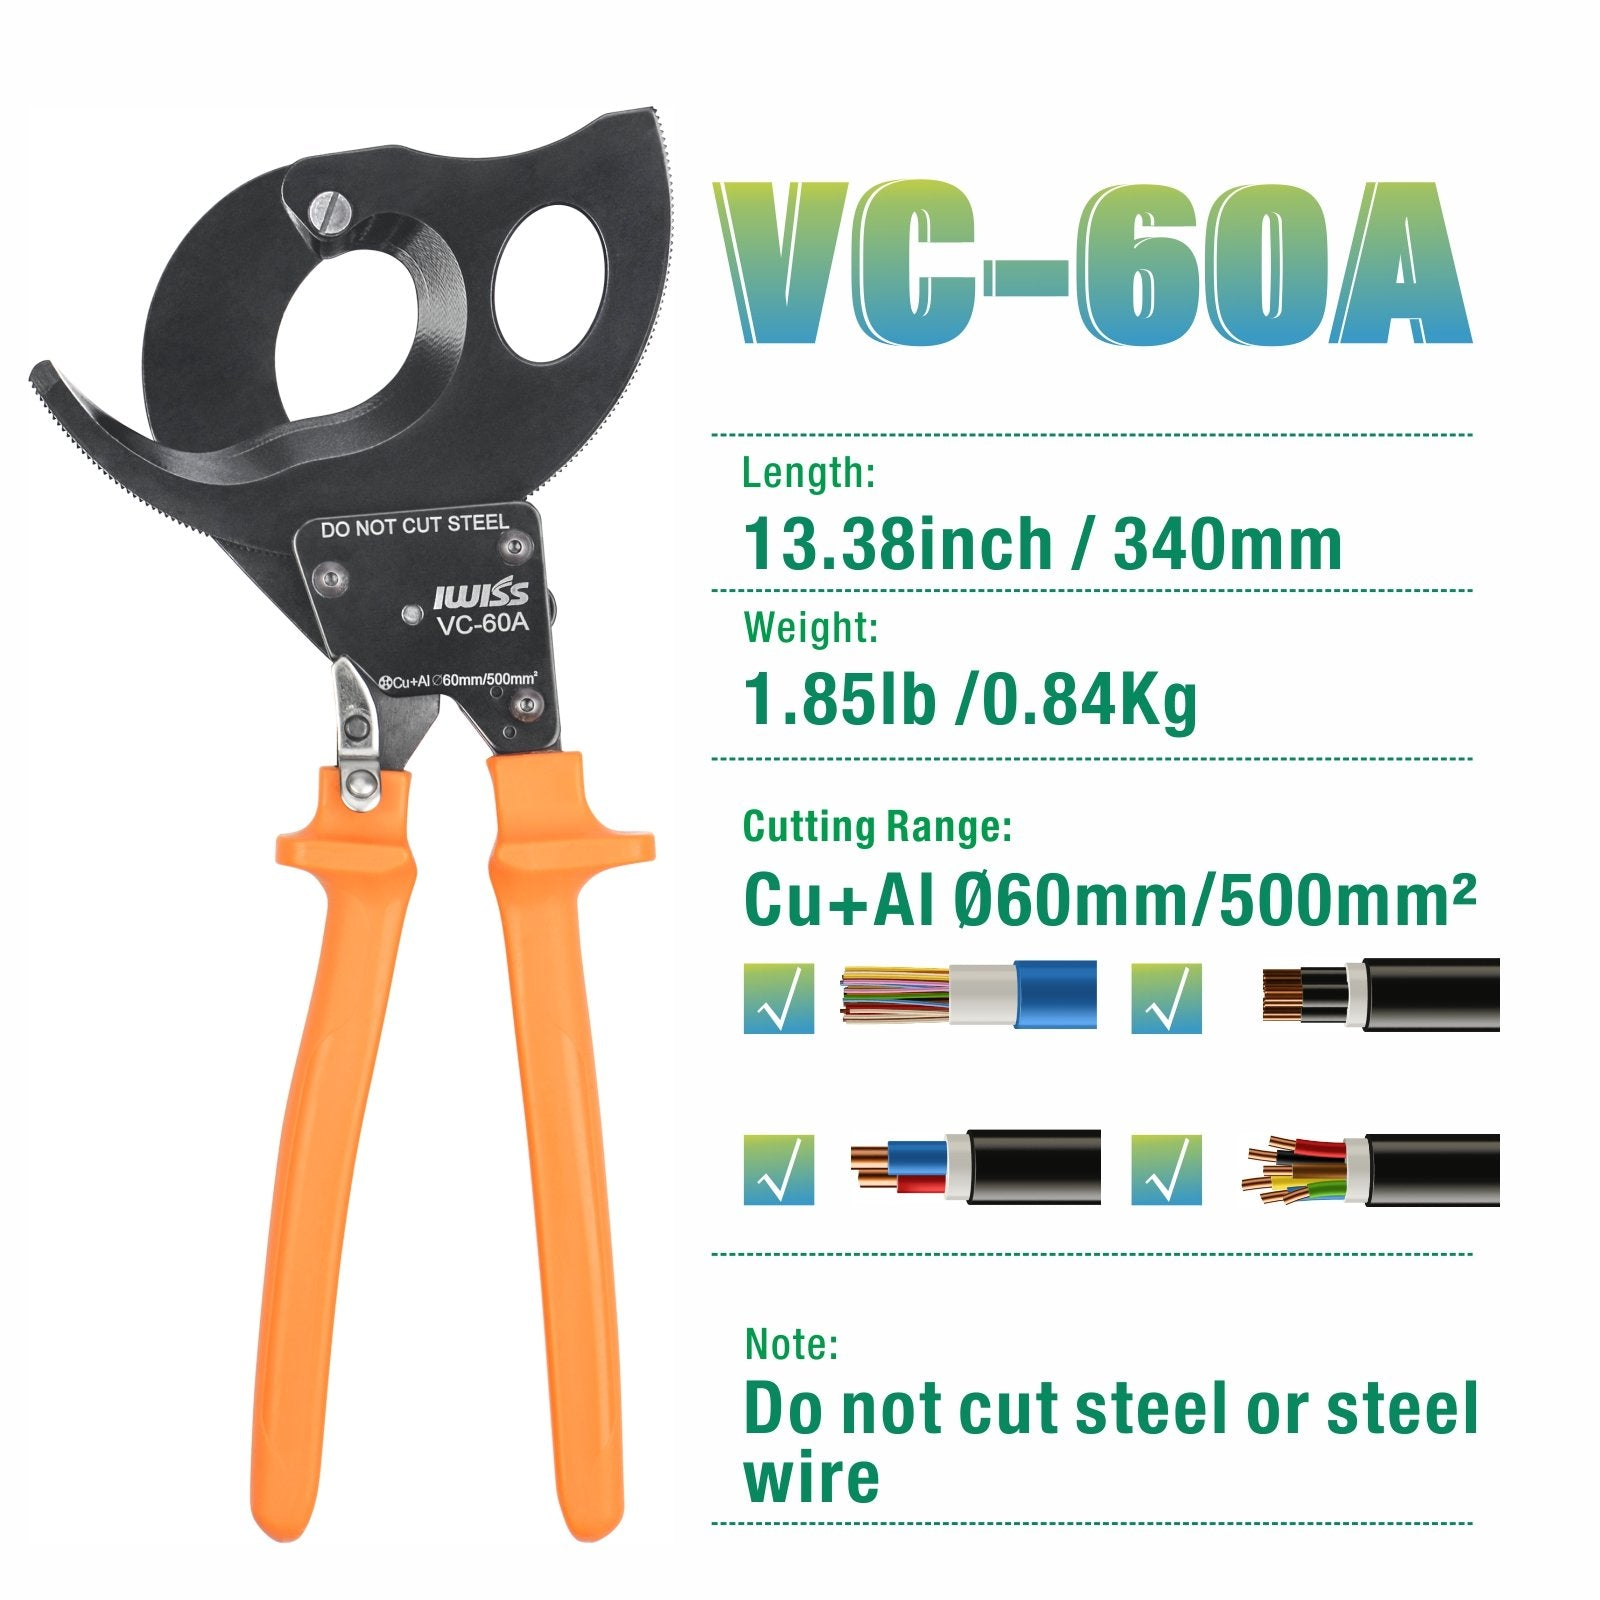 Ratechet Copper&Aluminum Cable Cutter Up To 500mm²/dia 60mm